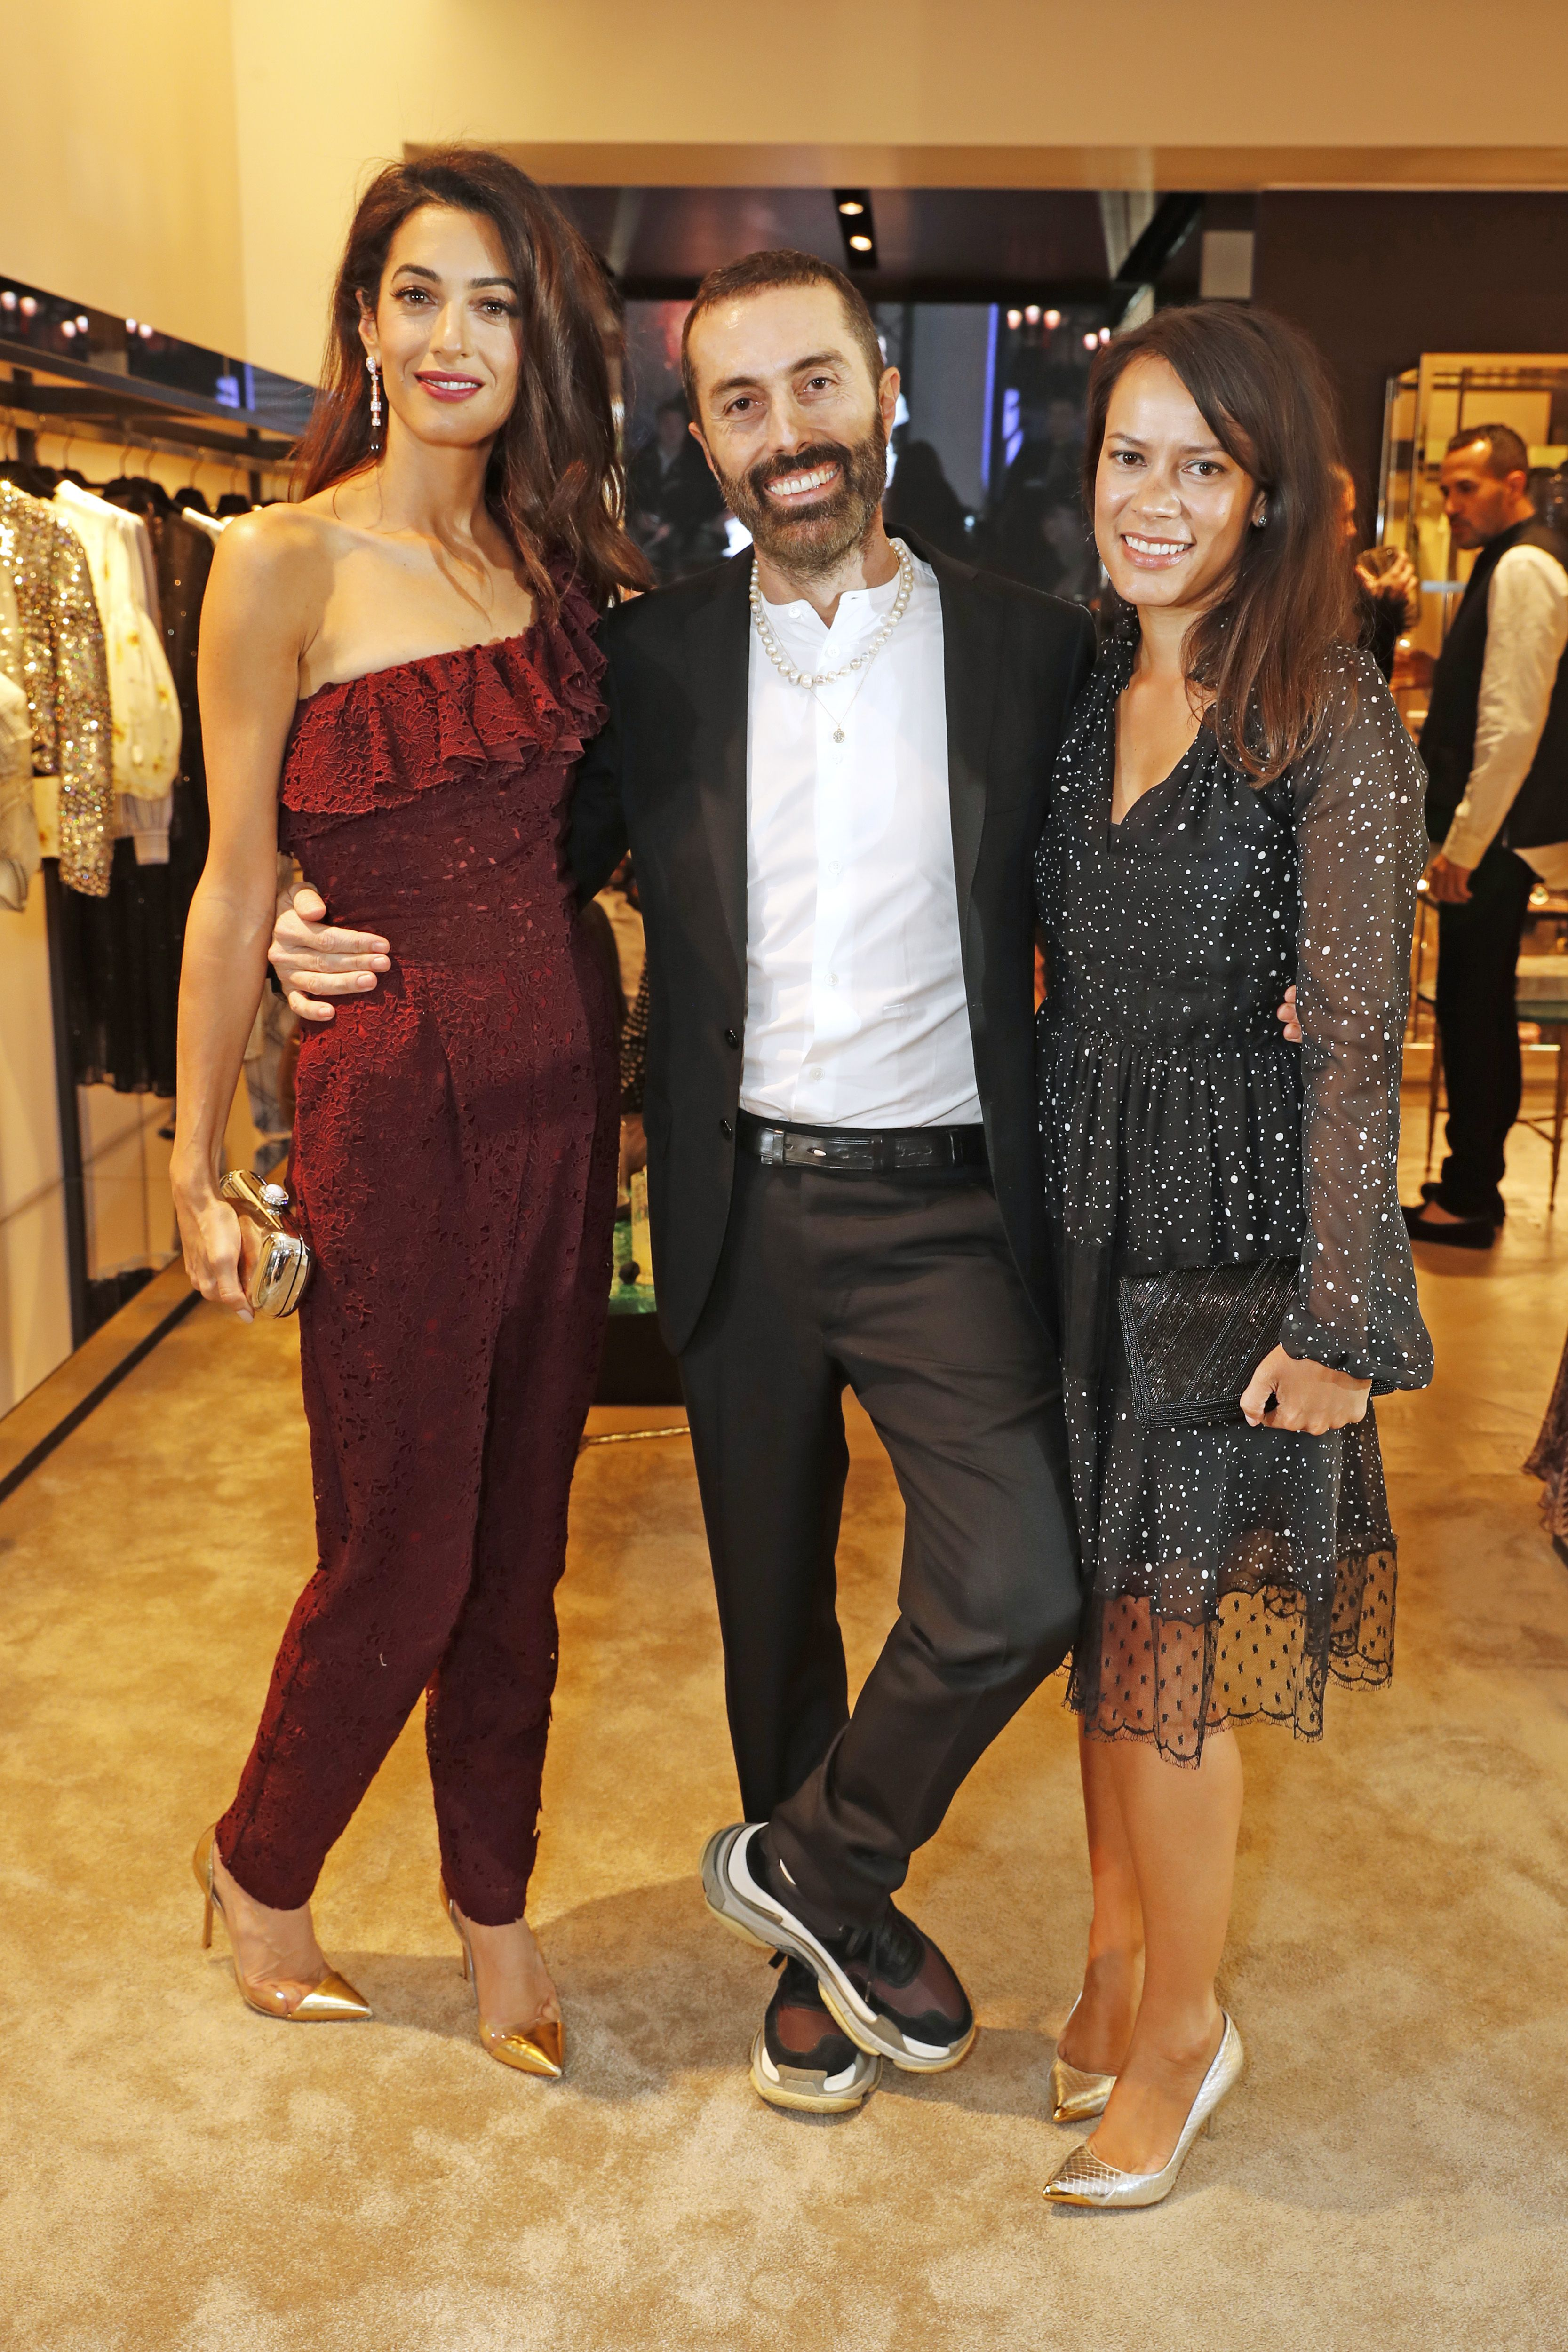 June 14, 2018 In a Giambattista Valli jumpsuit with designer Giambattista Valli and Philippa Webb at the brand's London store opening on Sloane Street.